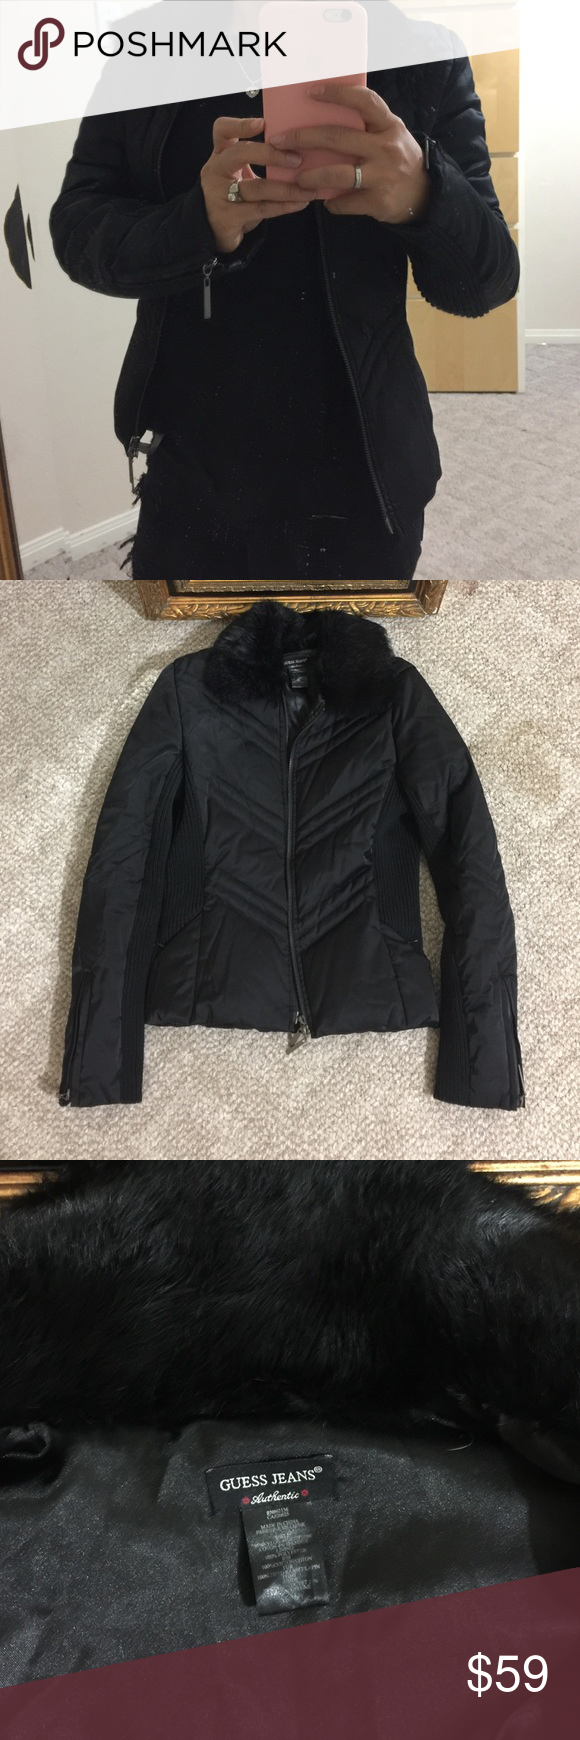 Guess fur puffer jacket GENTLY used in nearly perfect condition Guess Jackets & Coats Puffers